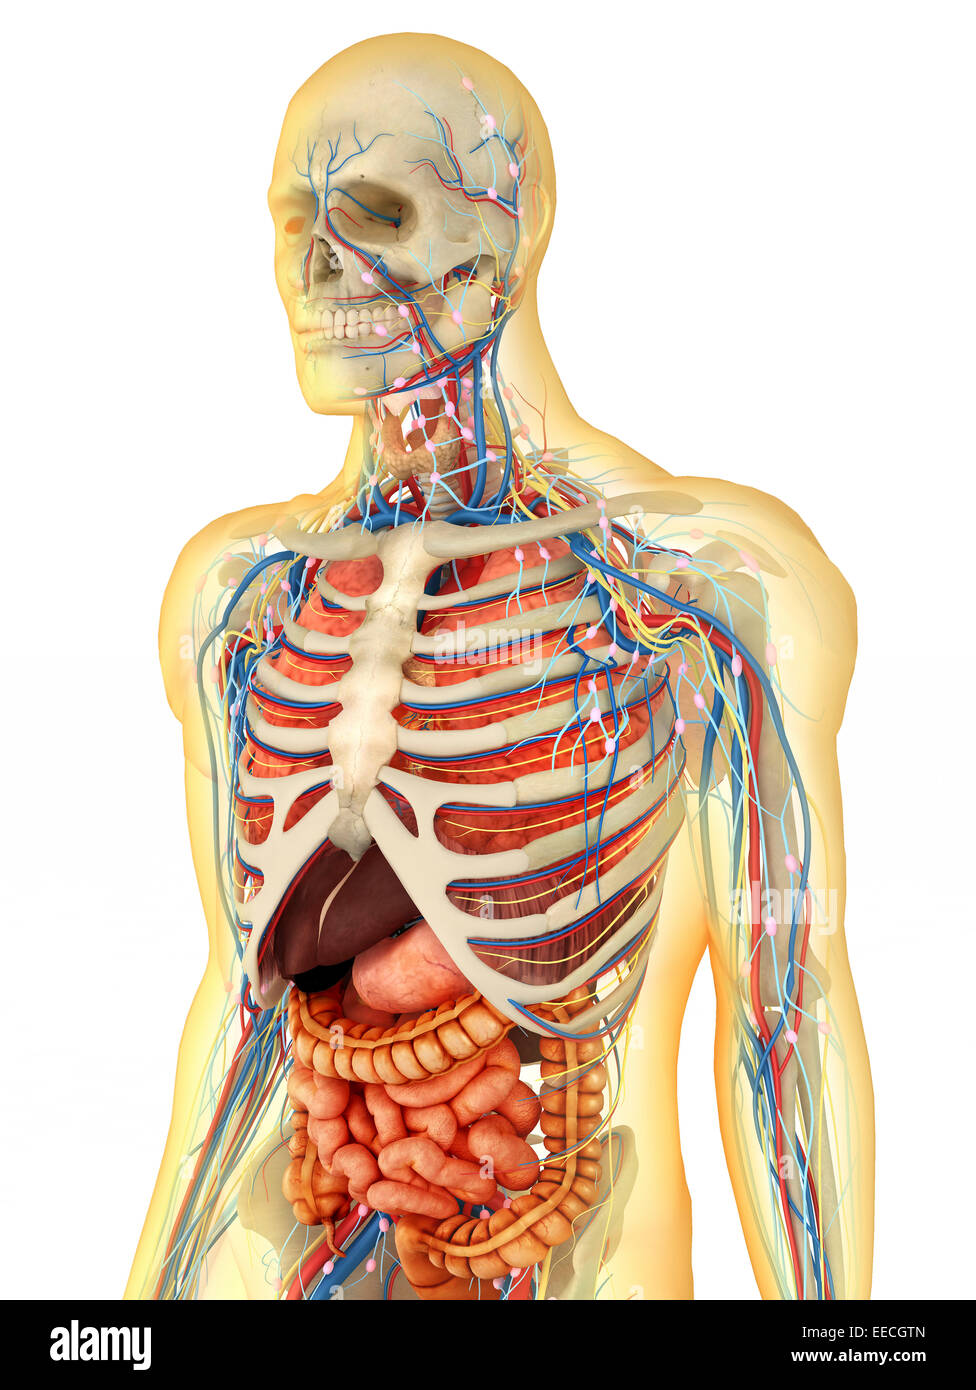 Generateexhibit additionally Pics Of Parts Of Body Name likewise Stock Photo Man Anatomy Full Respiratory Digestive Systems Cutaway Further Details Cutaways Made Different Organs Including Mouth Image30313680 together with Digital Illustration Human Face Cavity Larynx 246905776 also 7C 7C  5Emed College 5Ede 7Cde 7Cwiki 7Cbilder 7C9 12 5E. on stock illustration respiratory system human medical internal organs